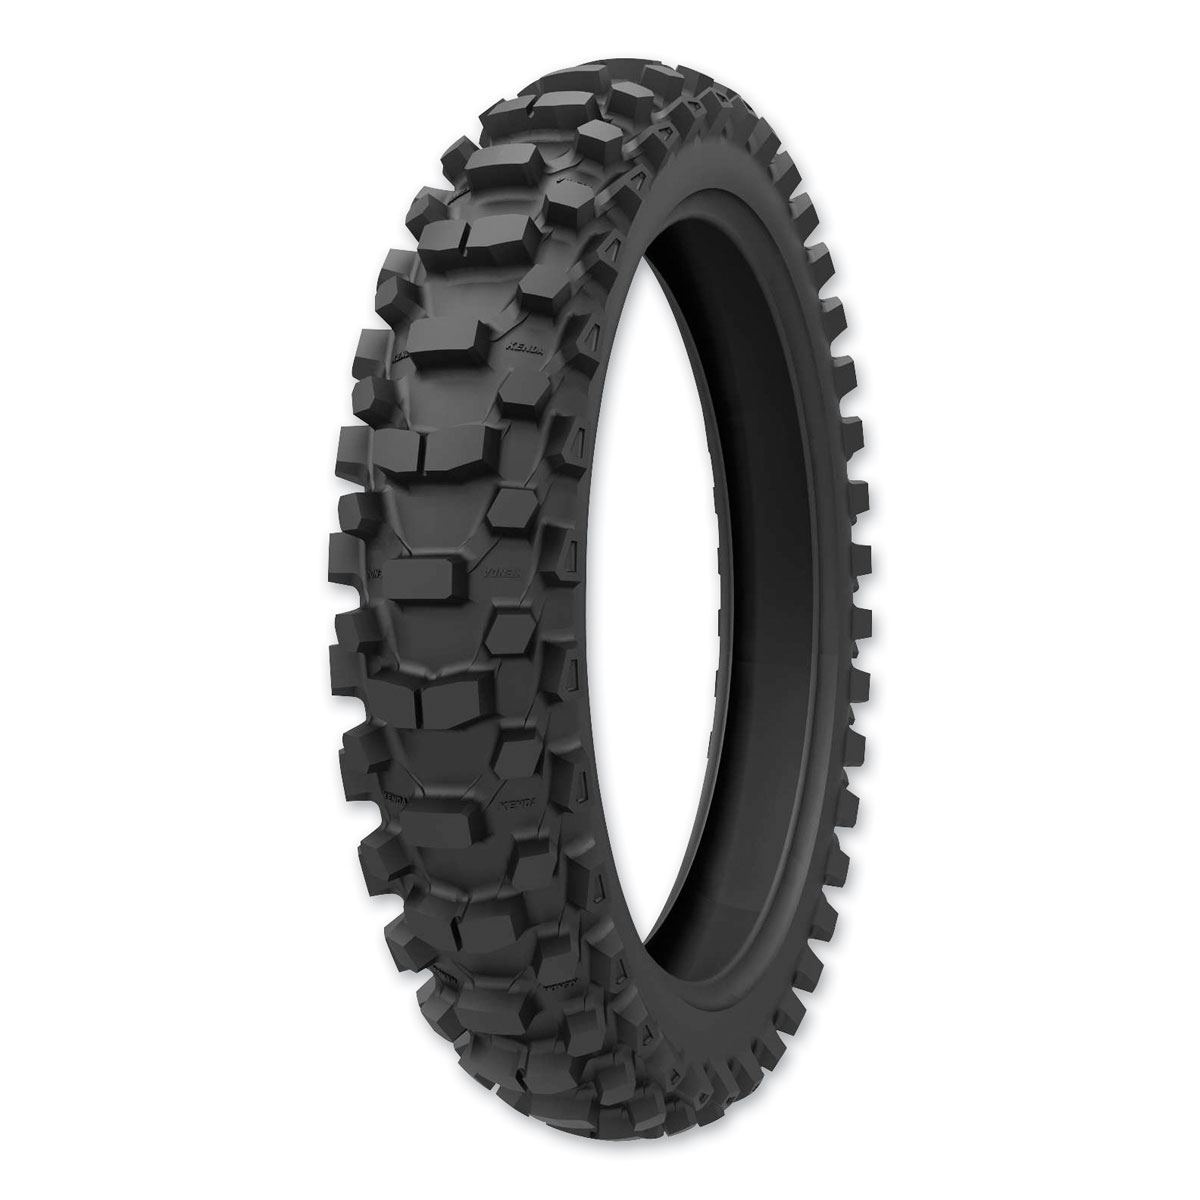 Kenda Tires K785 Millville II 80/100-12 Rear Tire